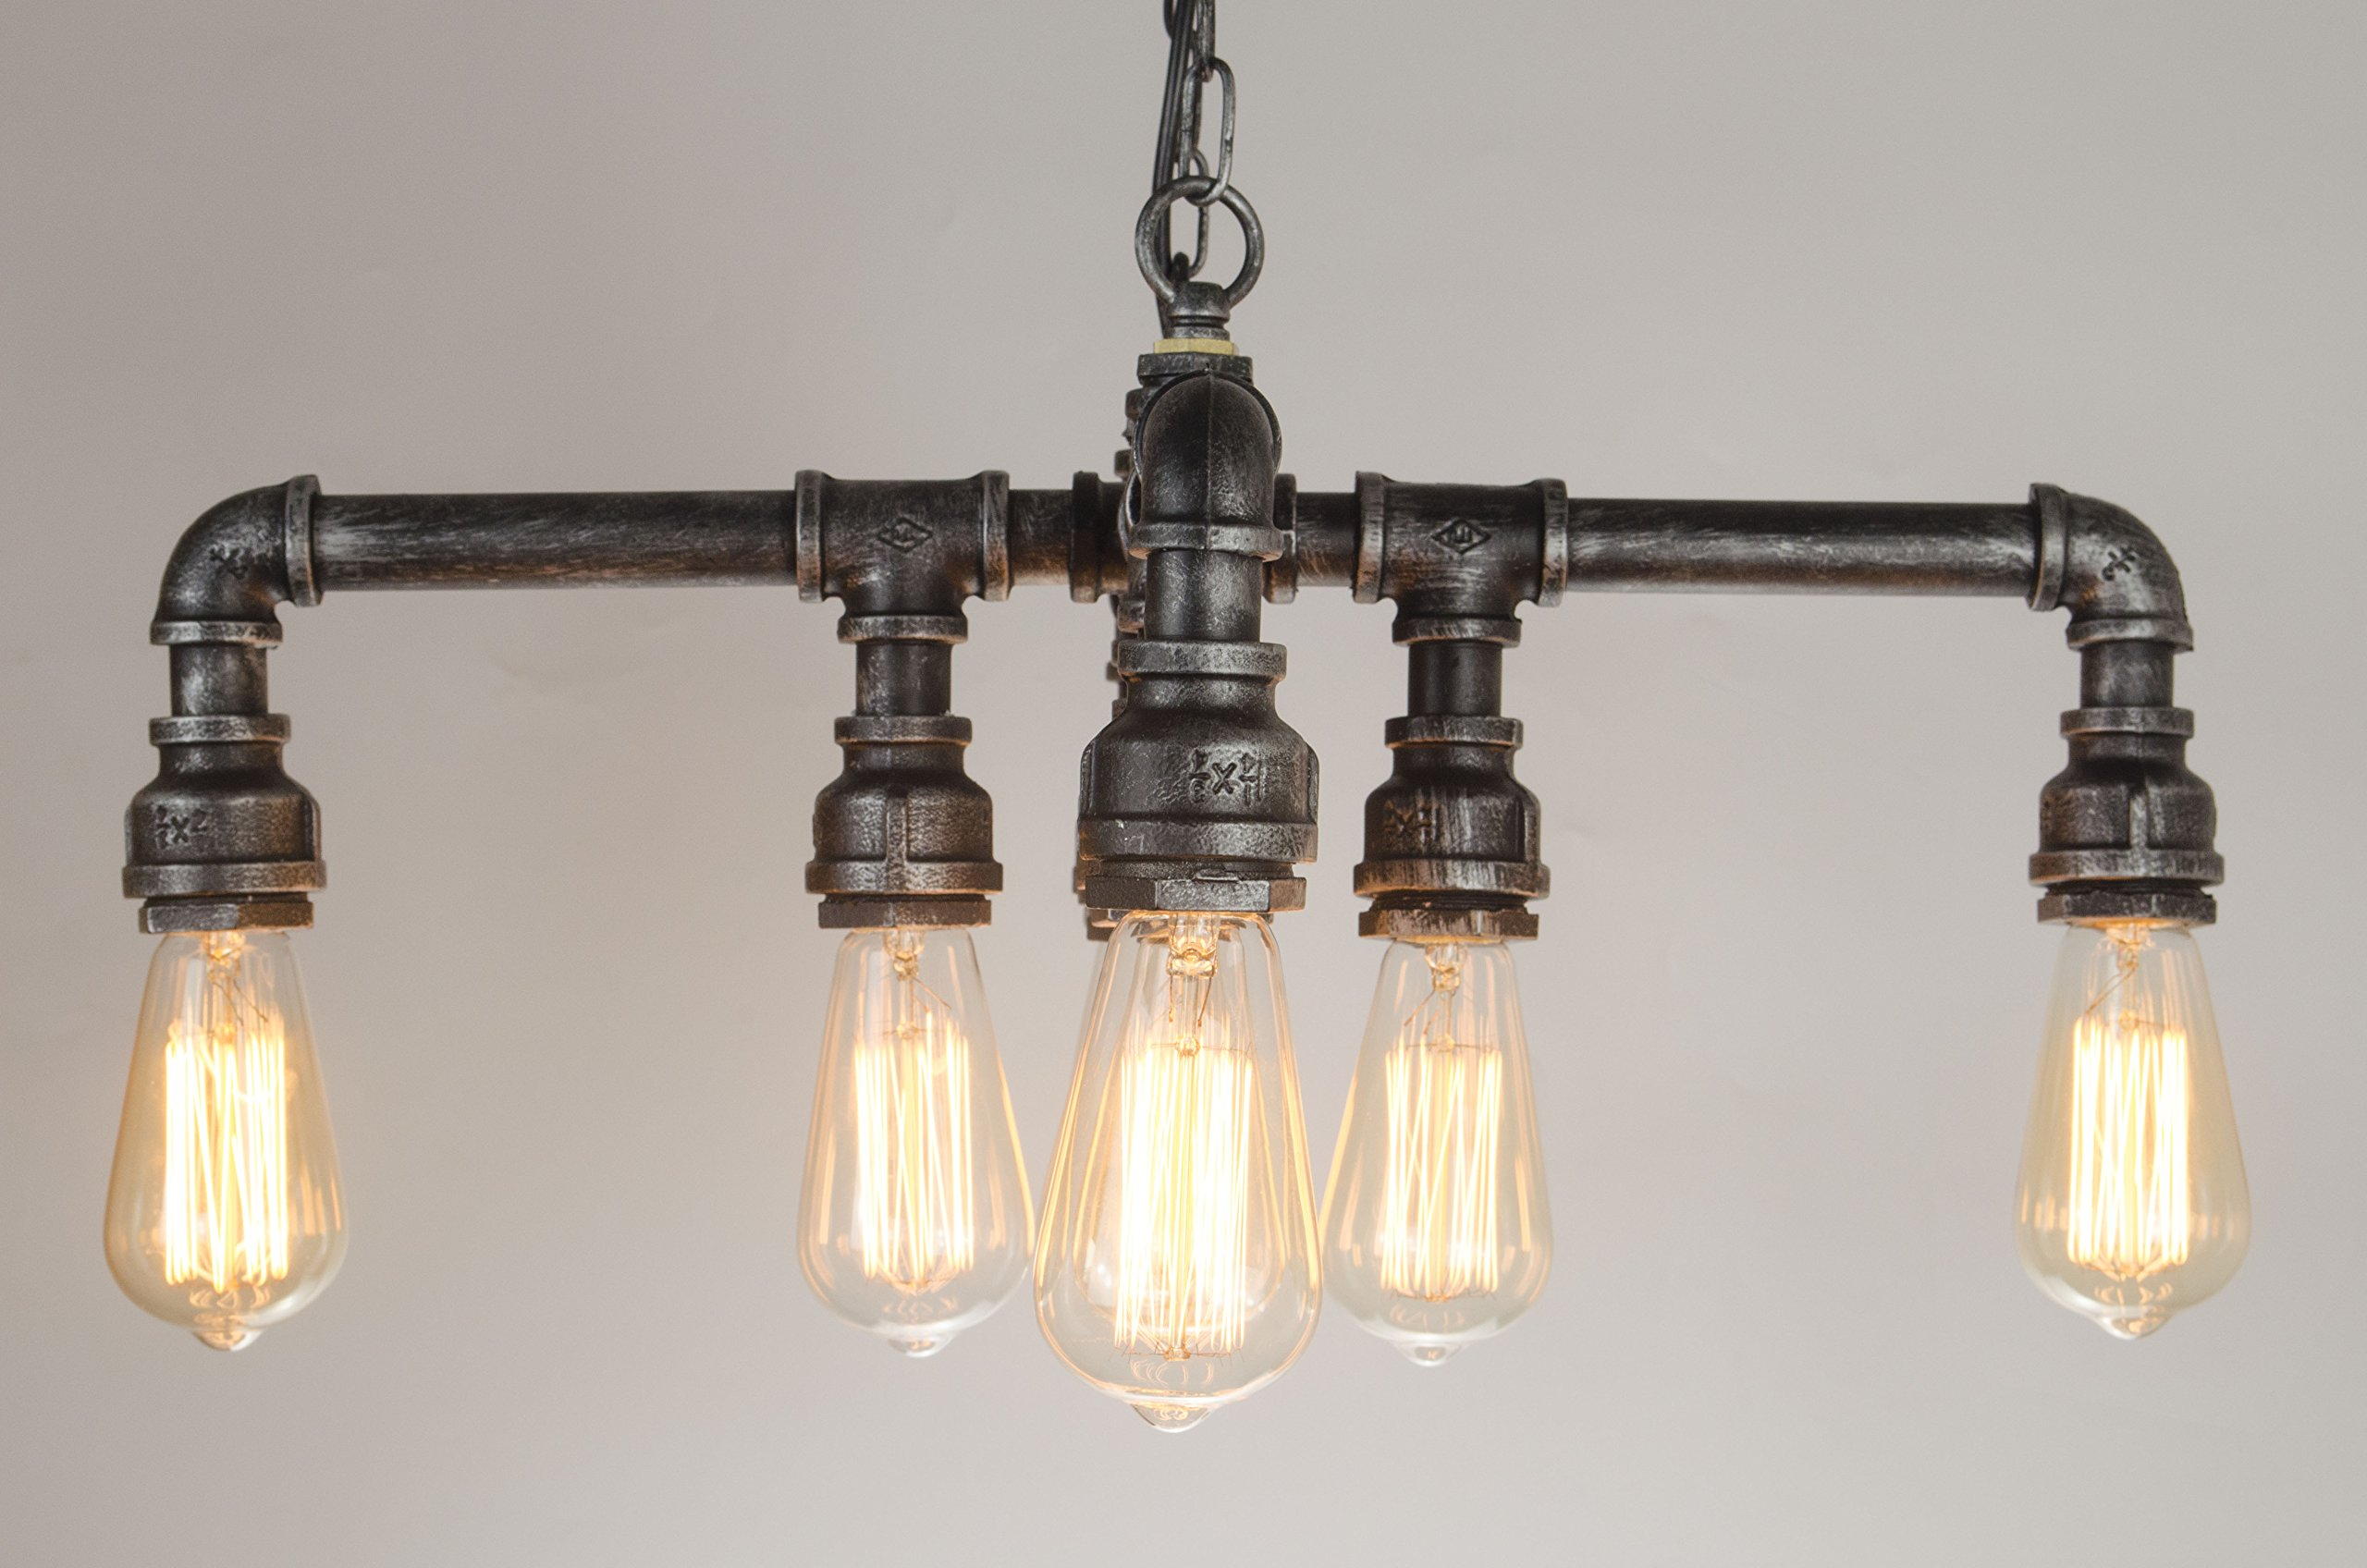 EdiMoM Brand; Vintage Metal Multiple Water Pipe Chandelier With Chain, 8 Lights, Max 480W, Black and Sliver